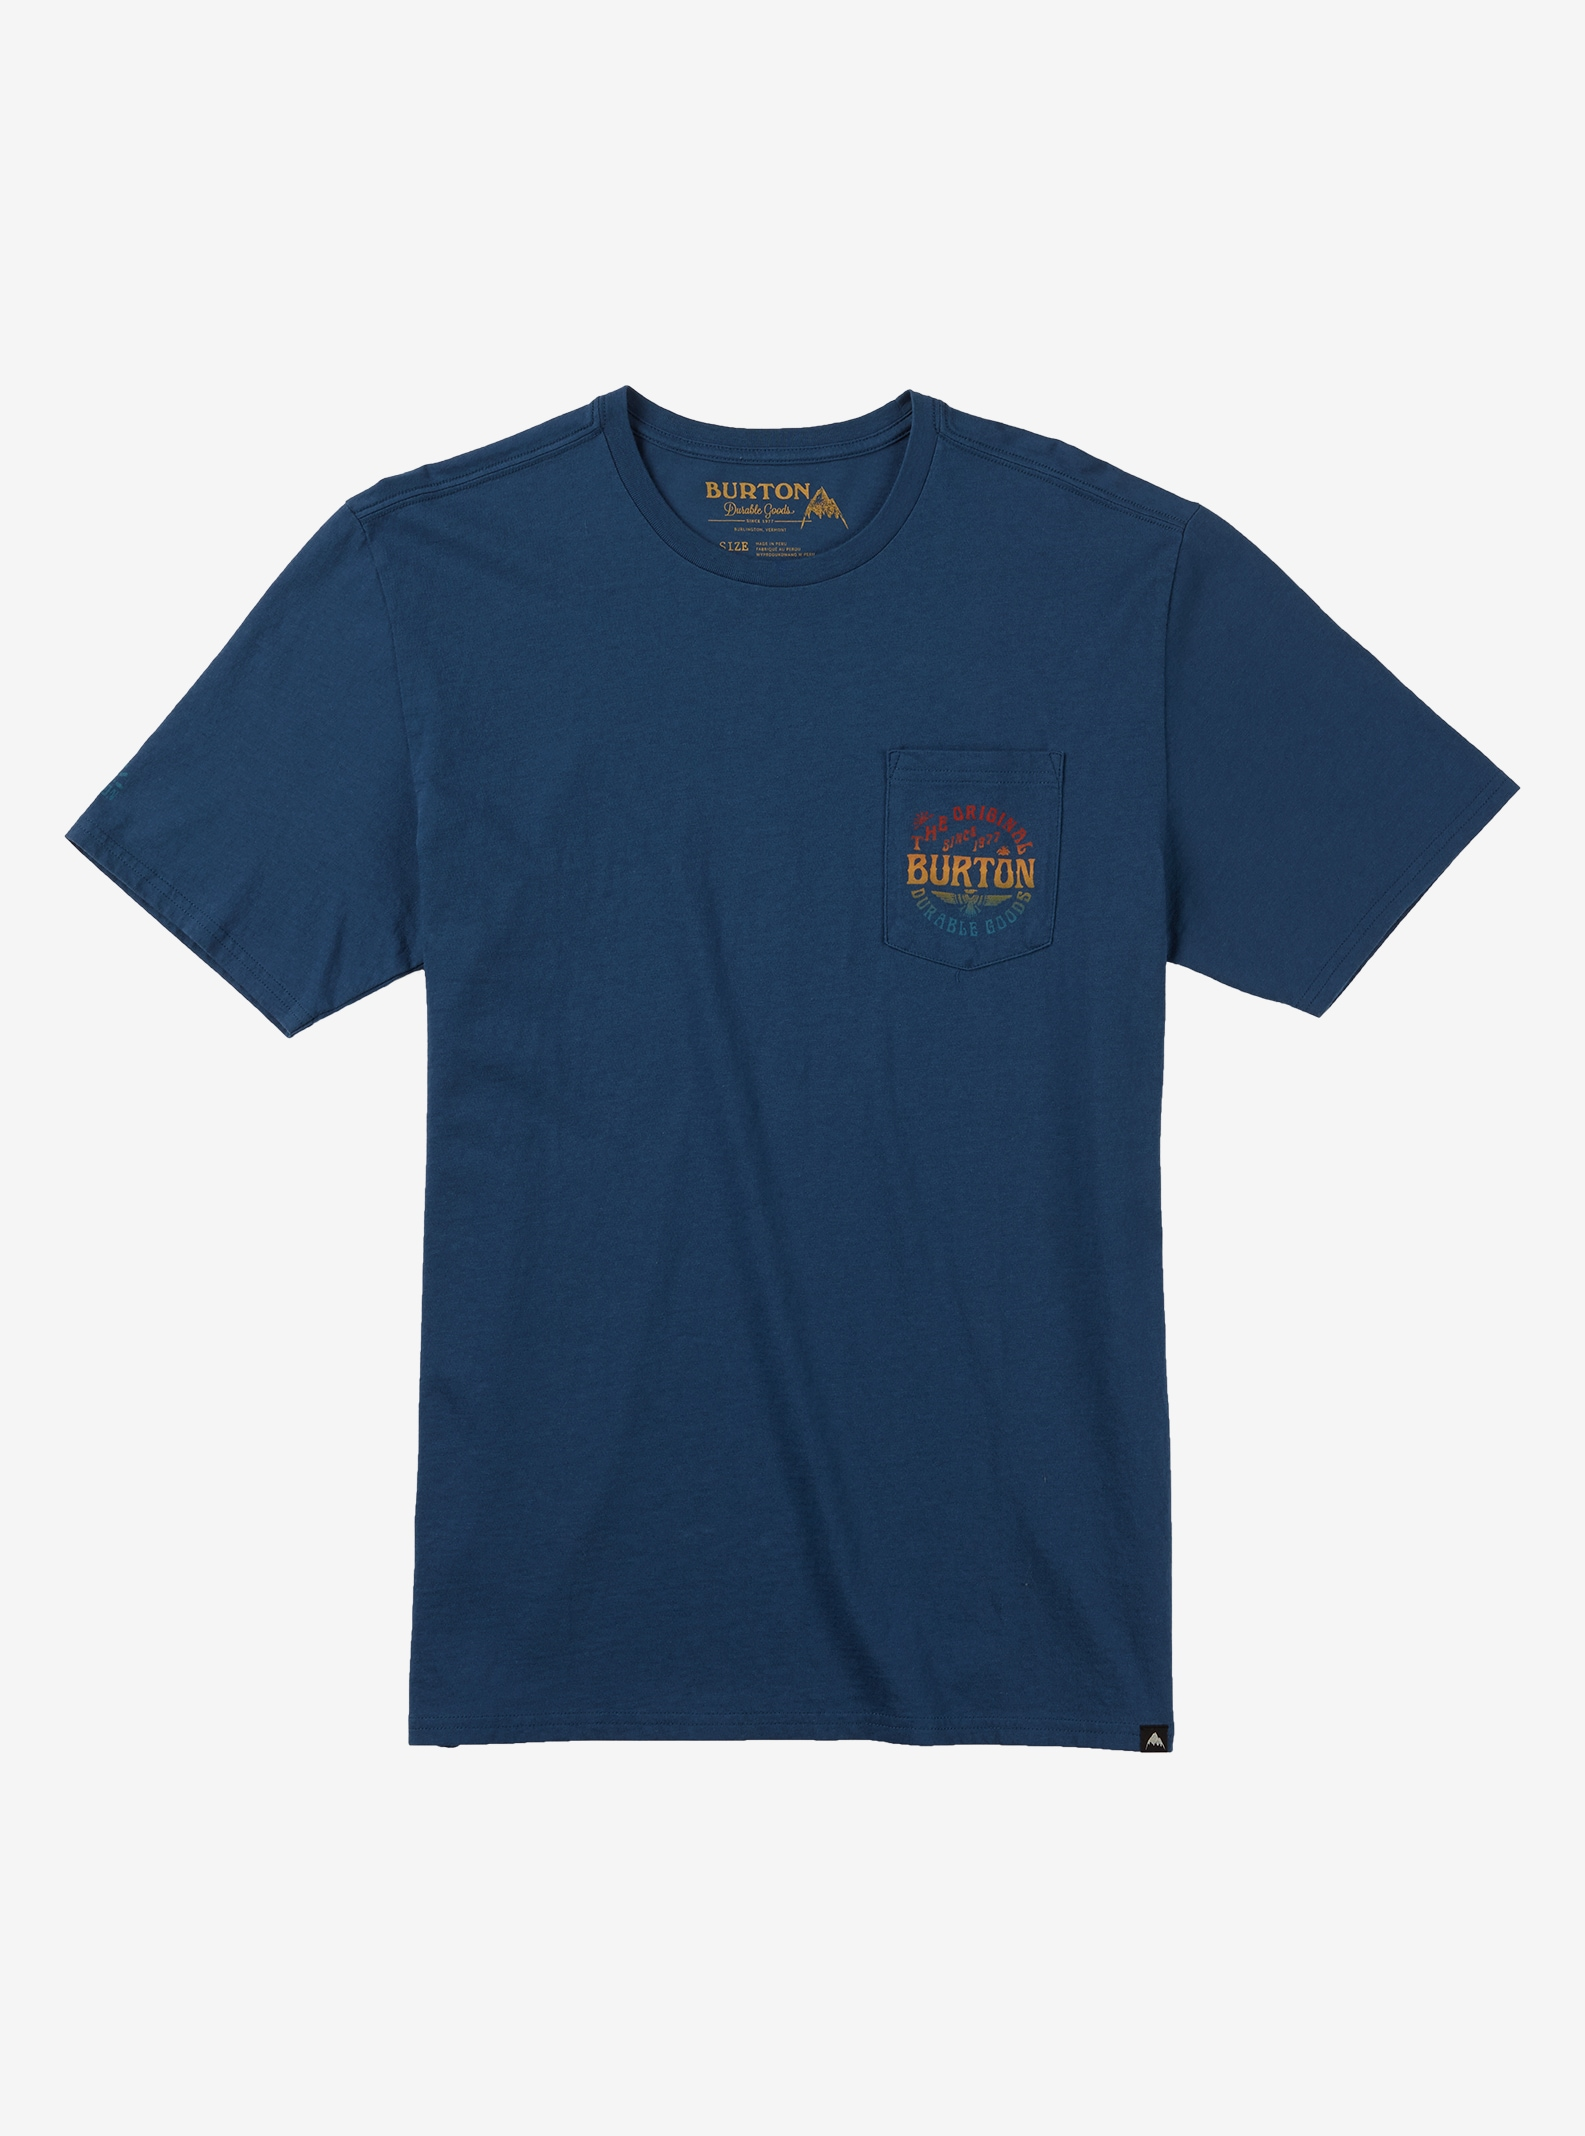 Burton Filmore Short Sleeve T Shirt shown in Indigo